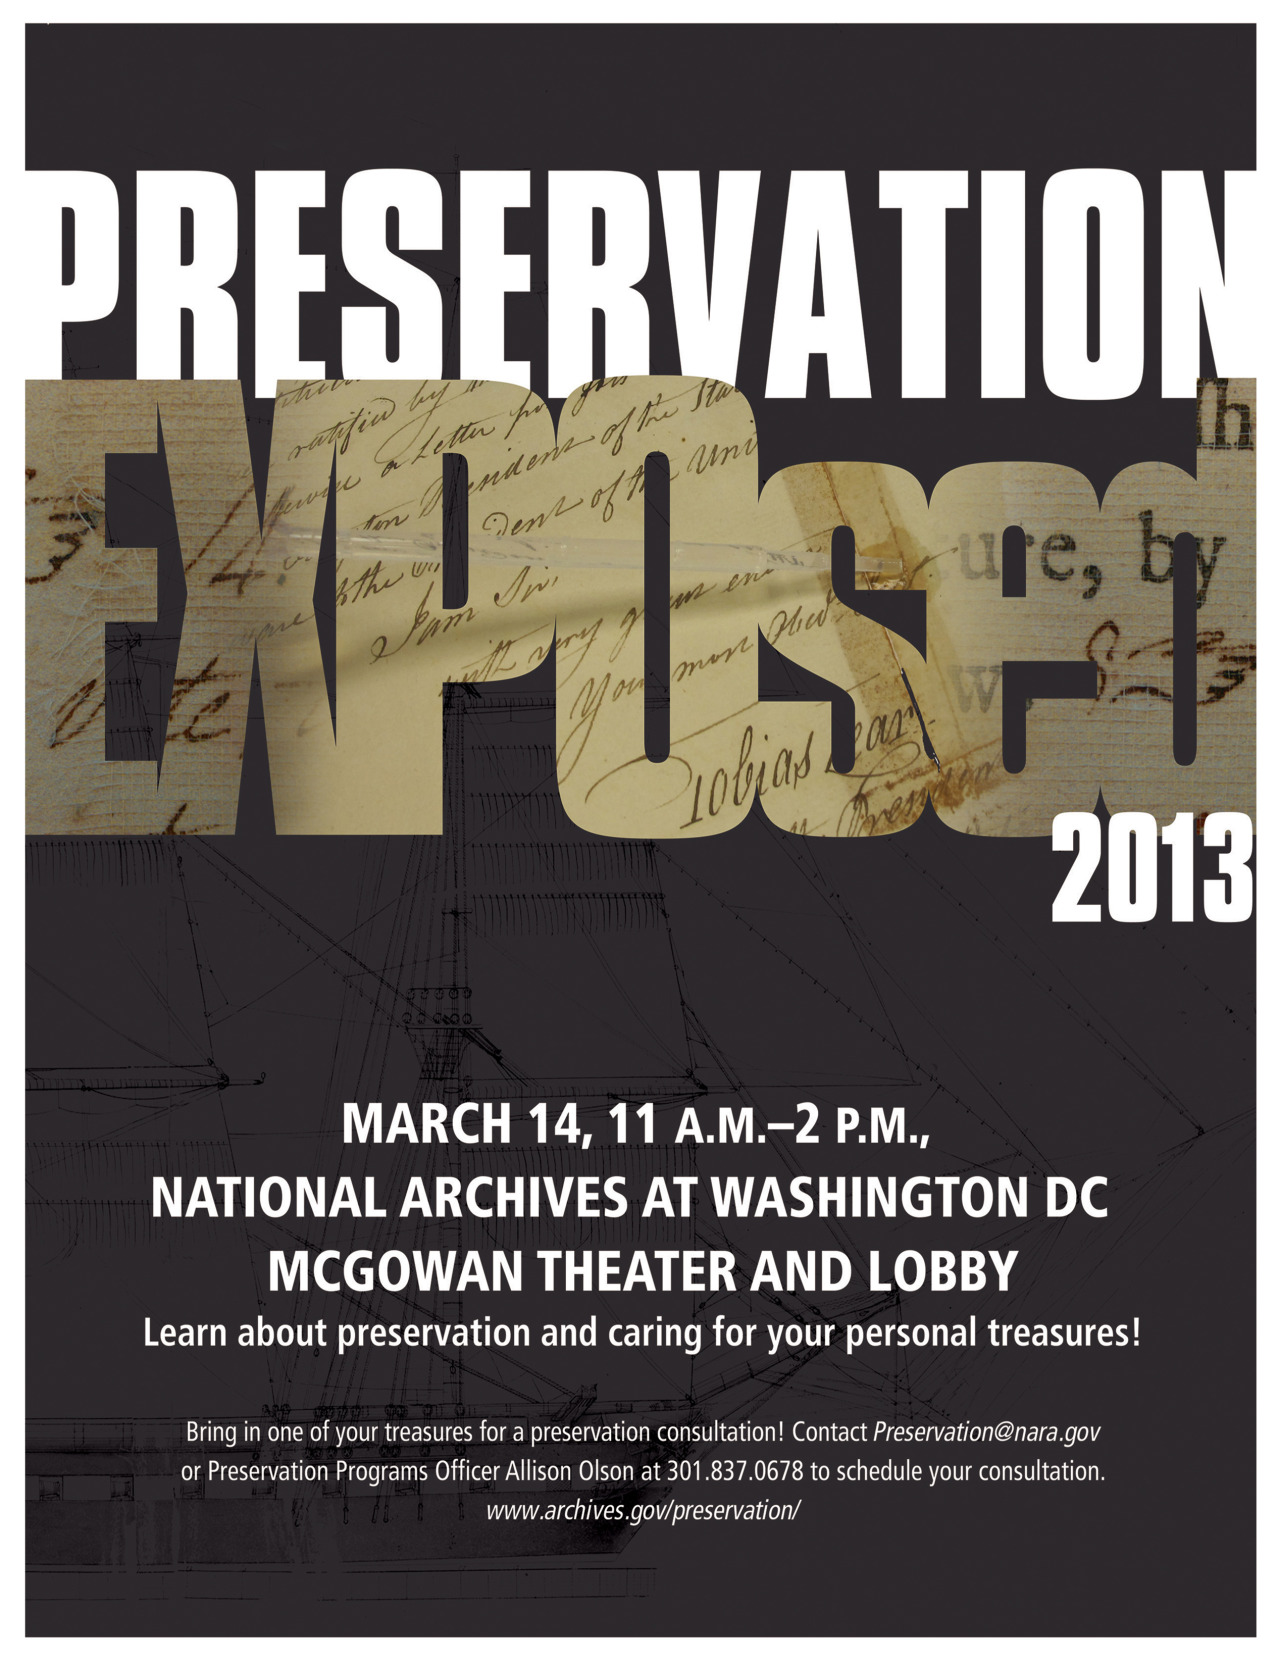 Next Week - Preservation EXPOsed at the National Archives! preservearchives:  National Archives Preservation Programs is hosting Preservation EXPOsed! on March 14th from 11 am to 2 pm in the McGowan Theater and Lobby at the National Archives in Washington, DC.  Learn how to care for your personal treasures at the preservation fair, hear lectures on preservation projects at the National Archives, and bring in a document, book, photo, artifact, or motion picture film for a consultation with a conservator.  The event is free and open to the public.  Appointments are required for individual consultations; contact Preservation@nara.gov or Preservation Programs Officer Allison Olson at 301-837-0678 to schedule one. Attendees can enter at the Special Events Entrance of Archives I on Constitution Avenue between 7th and 9th Street NW.